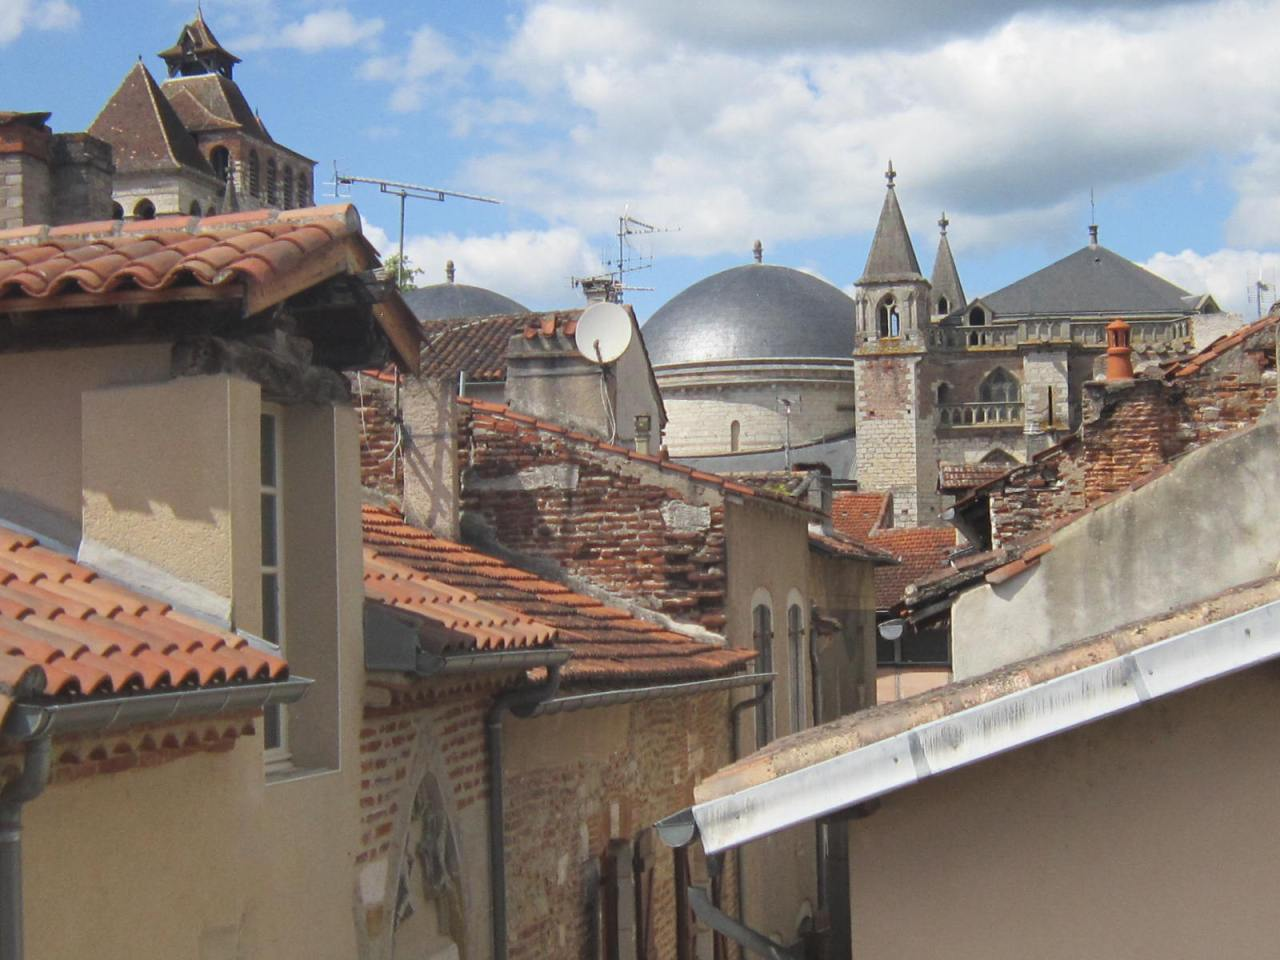 View from the Gite du Papillon Vert of the city of Cahors on the Chemin St. Jacques de Compostelle in southernFrance